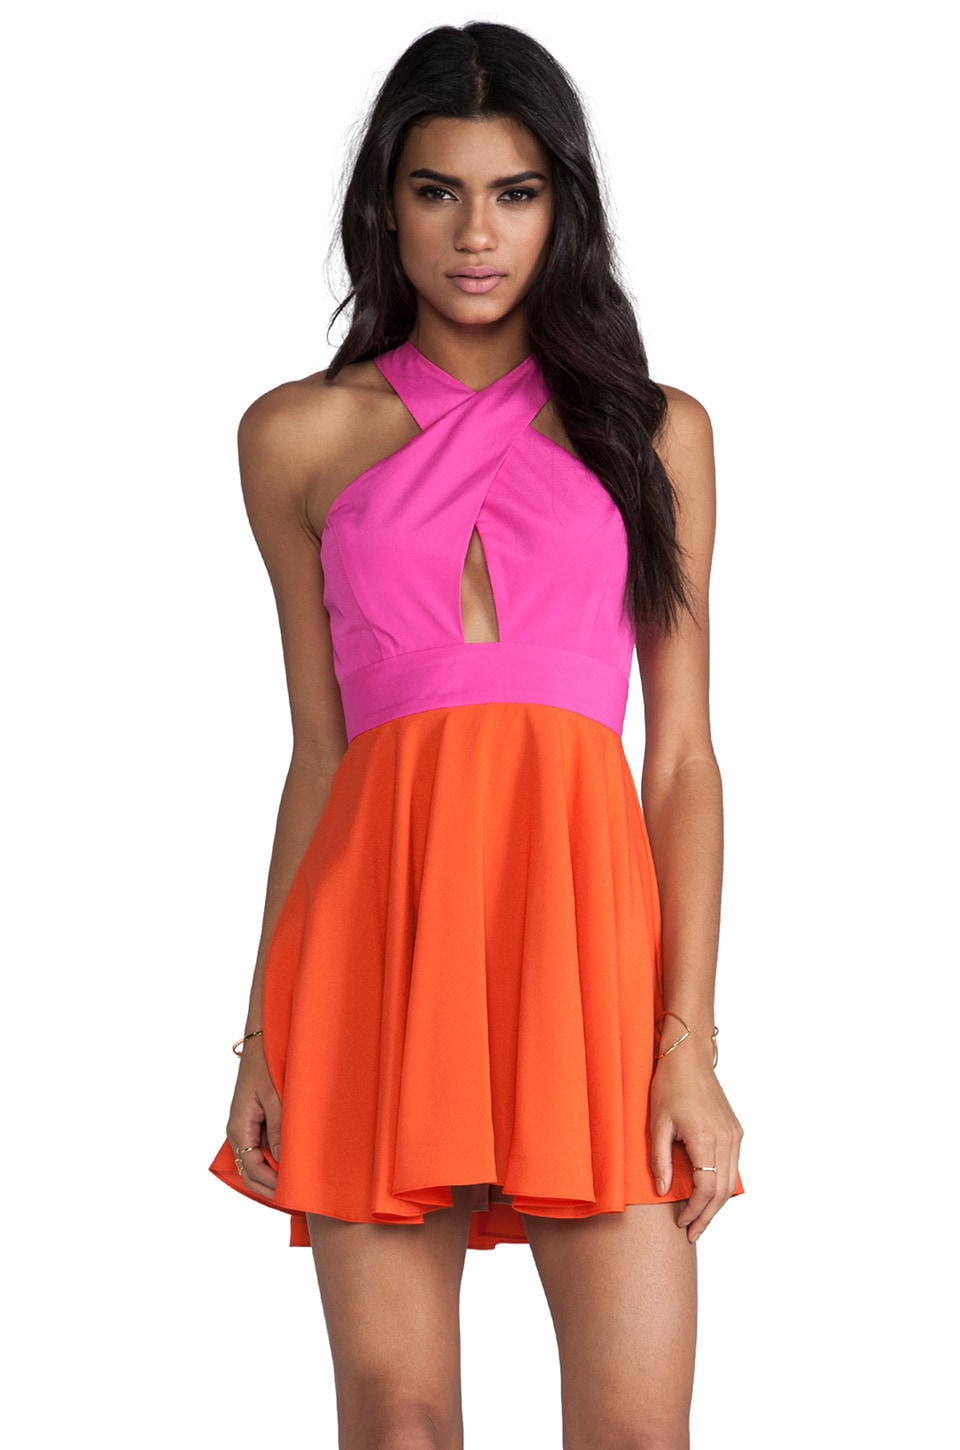 Naven EXCLUSIVE Two-Tone Criss Cross Vixen Dress in Pop Pink/Orange Crush